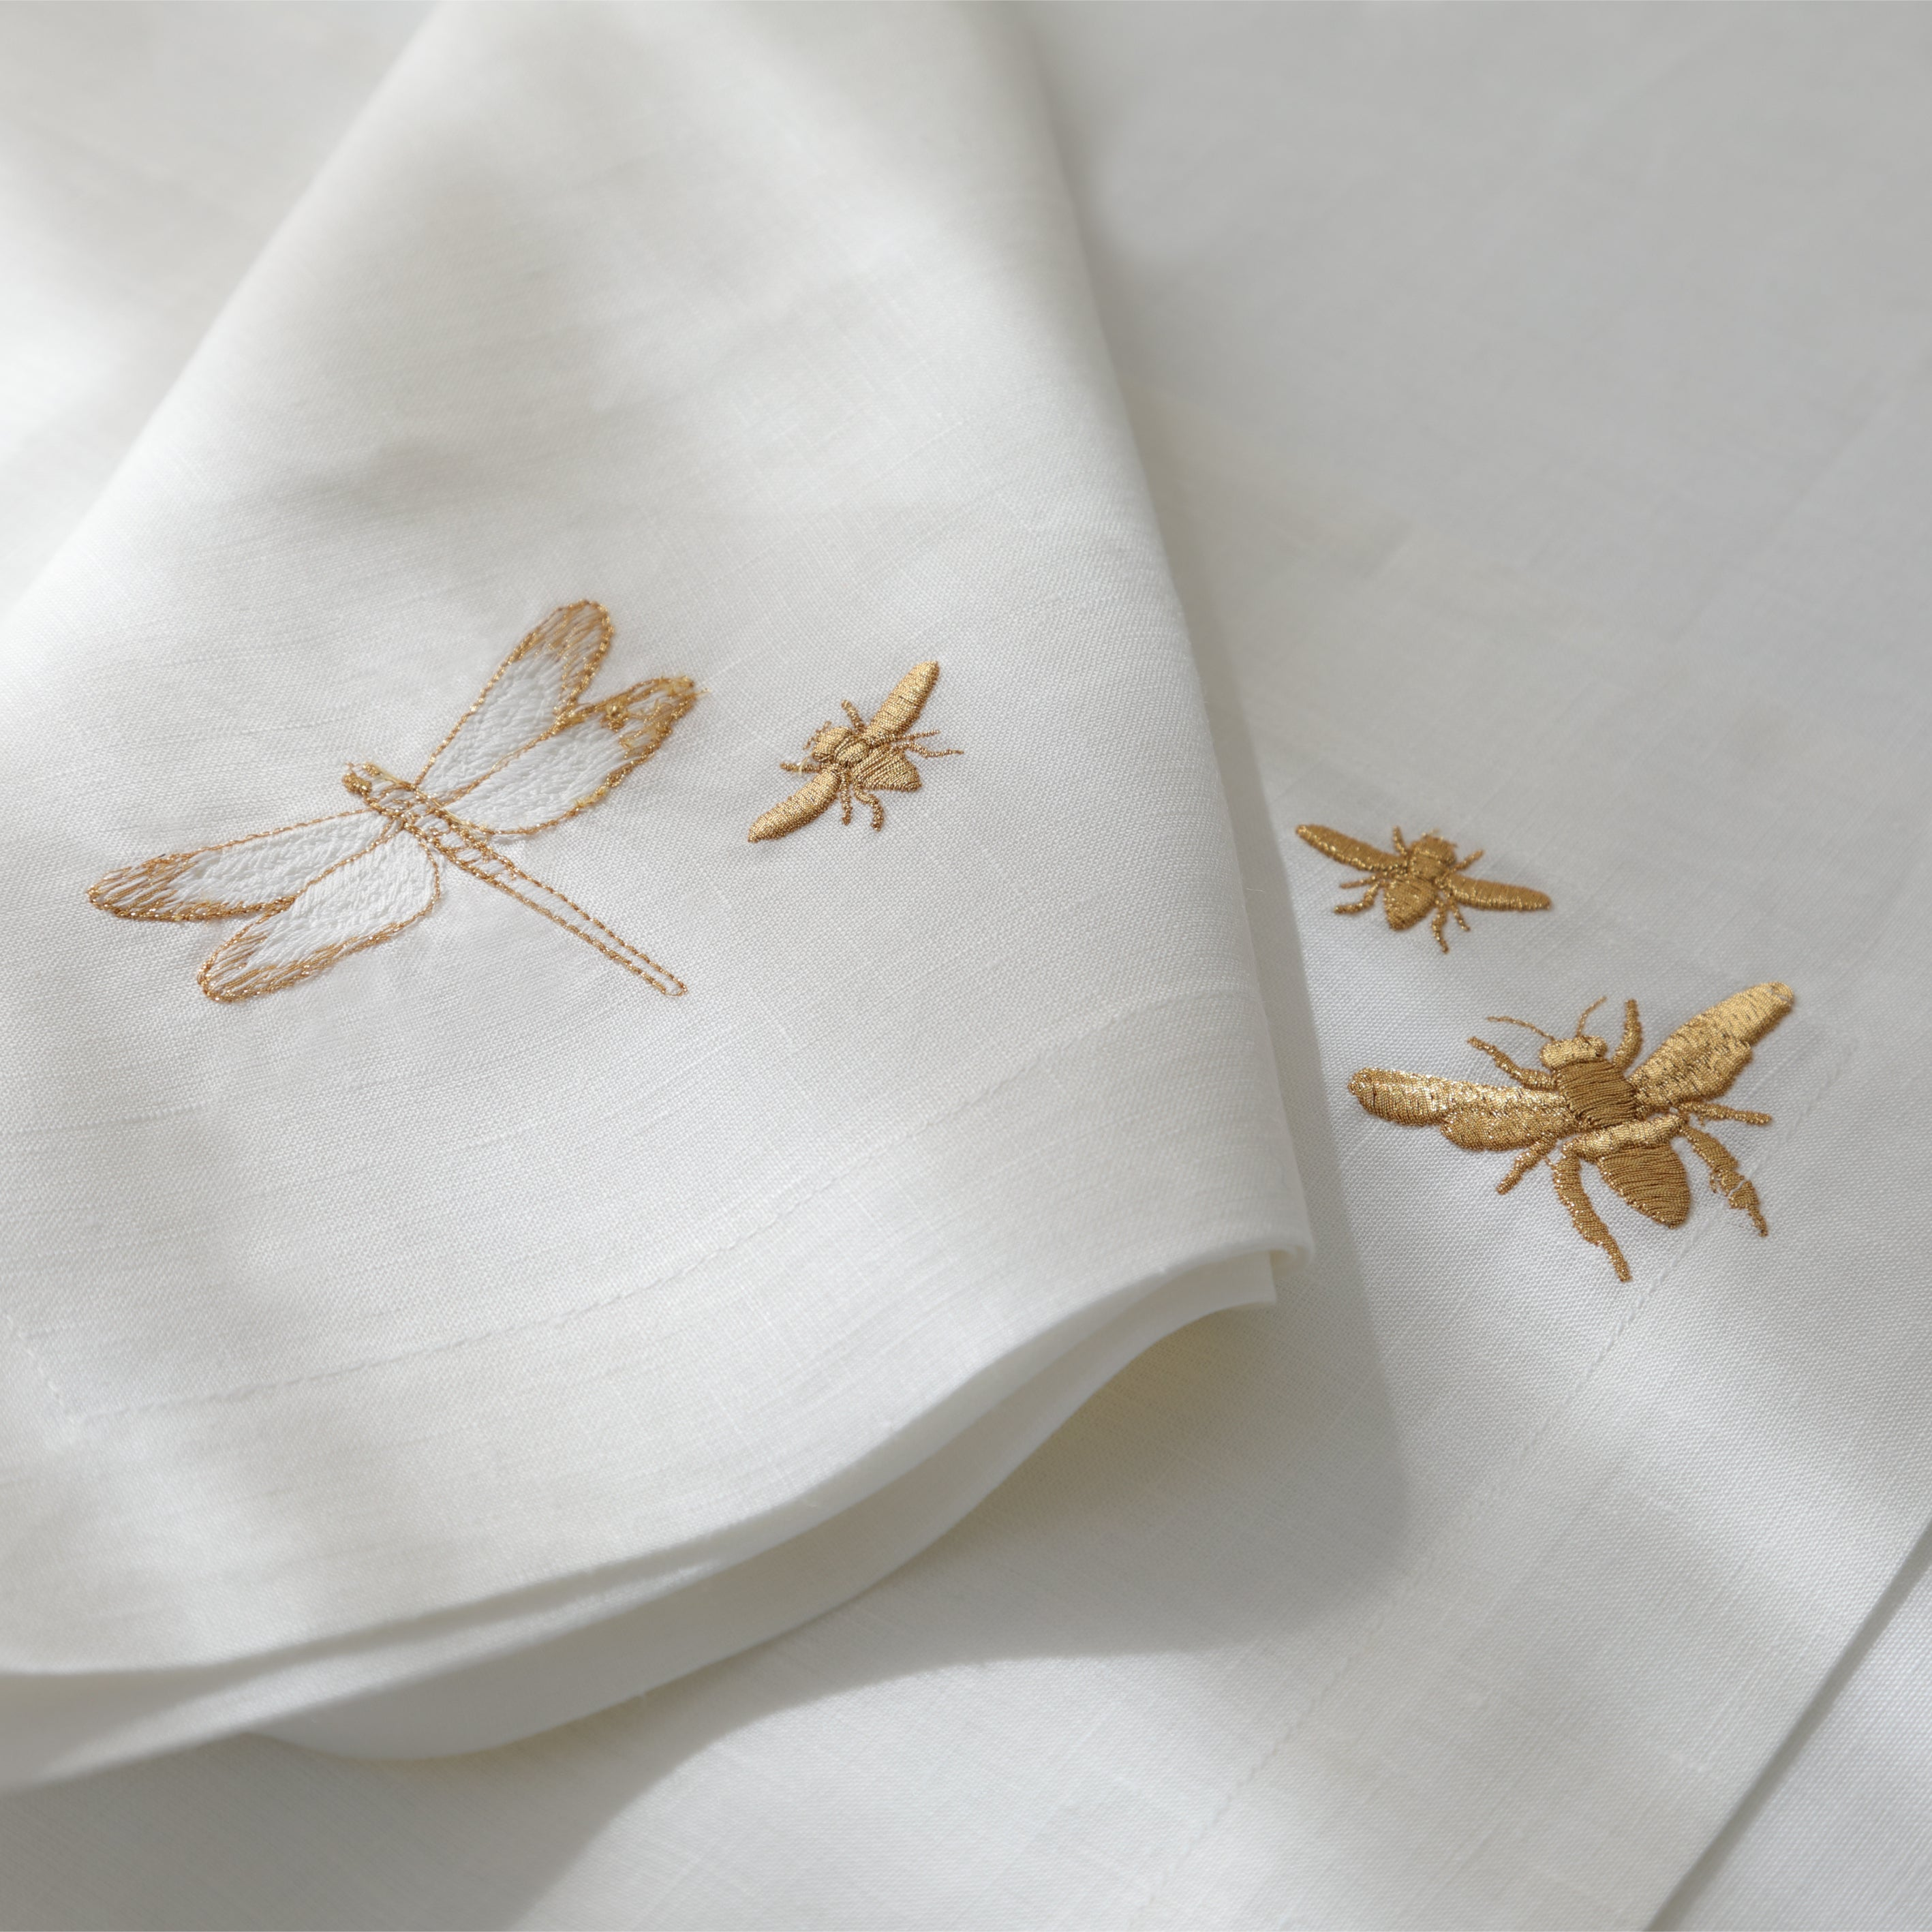 Dragonfly and Bees Table Set